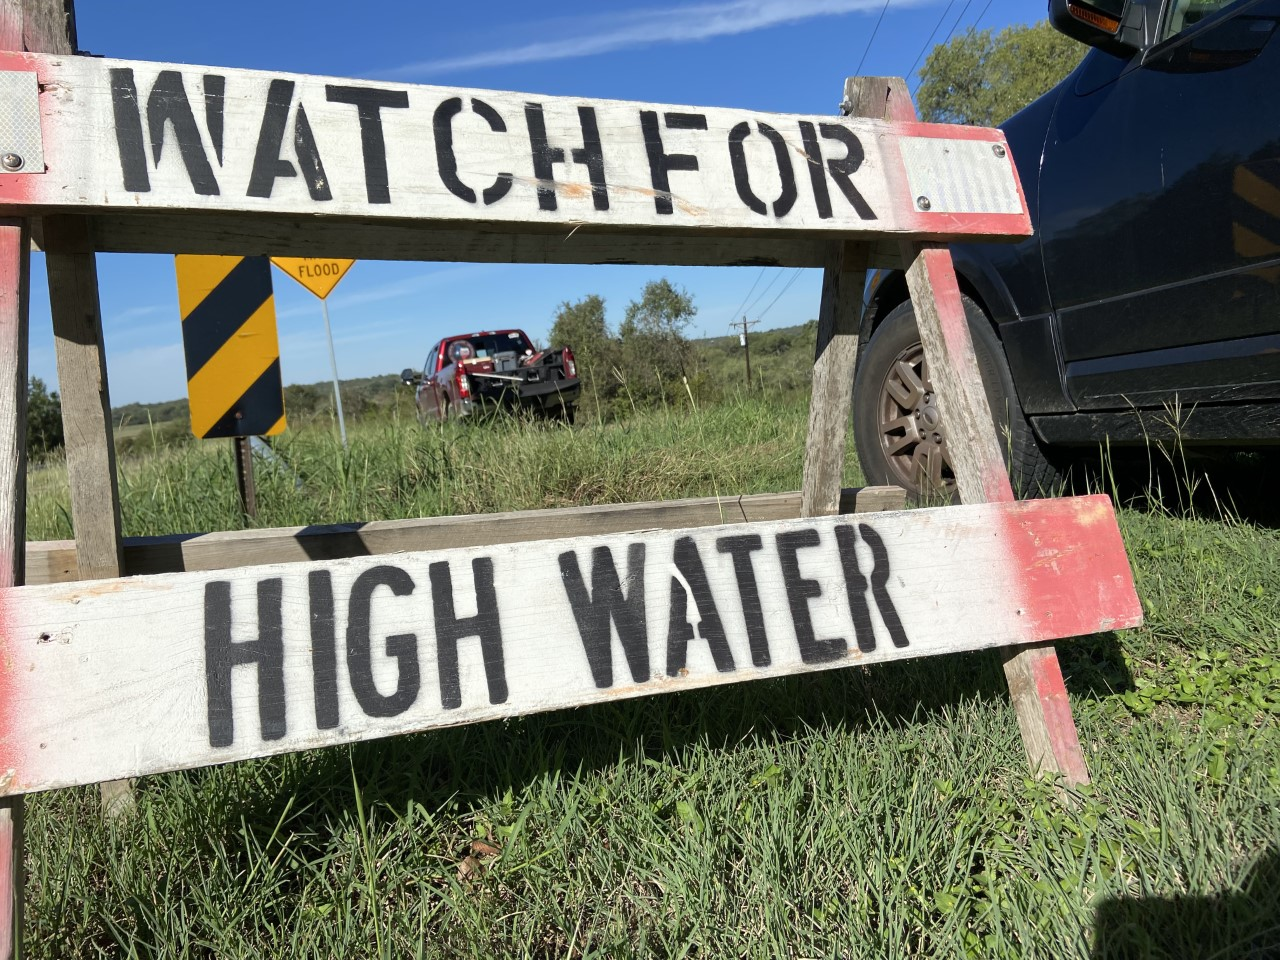 Watch for high water sign in front of search and rescue trucks